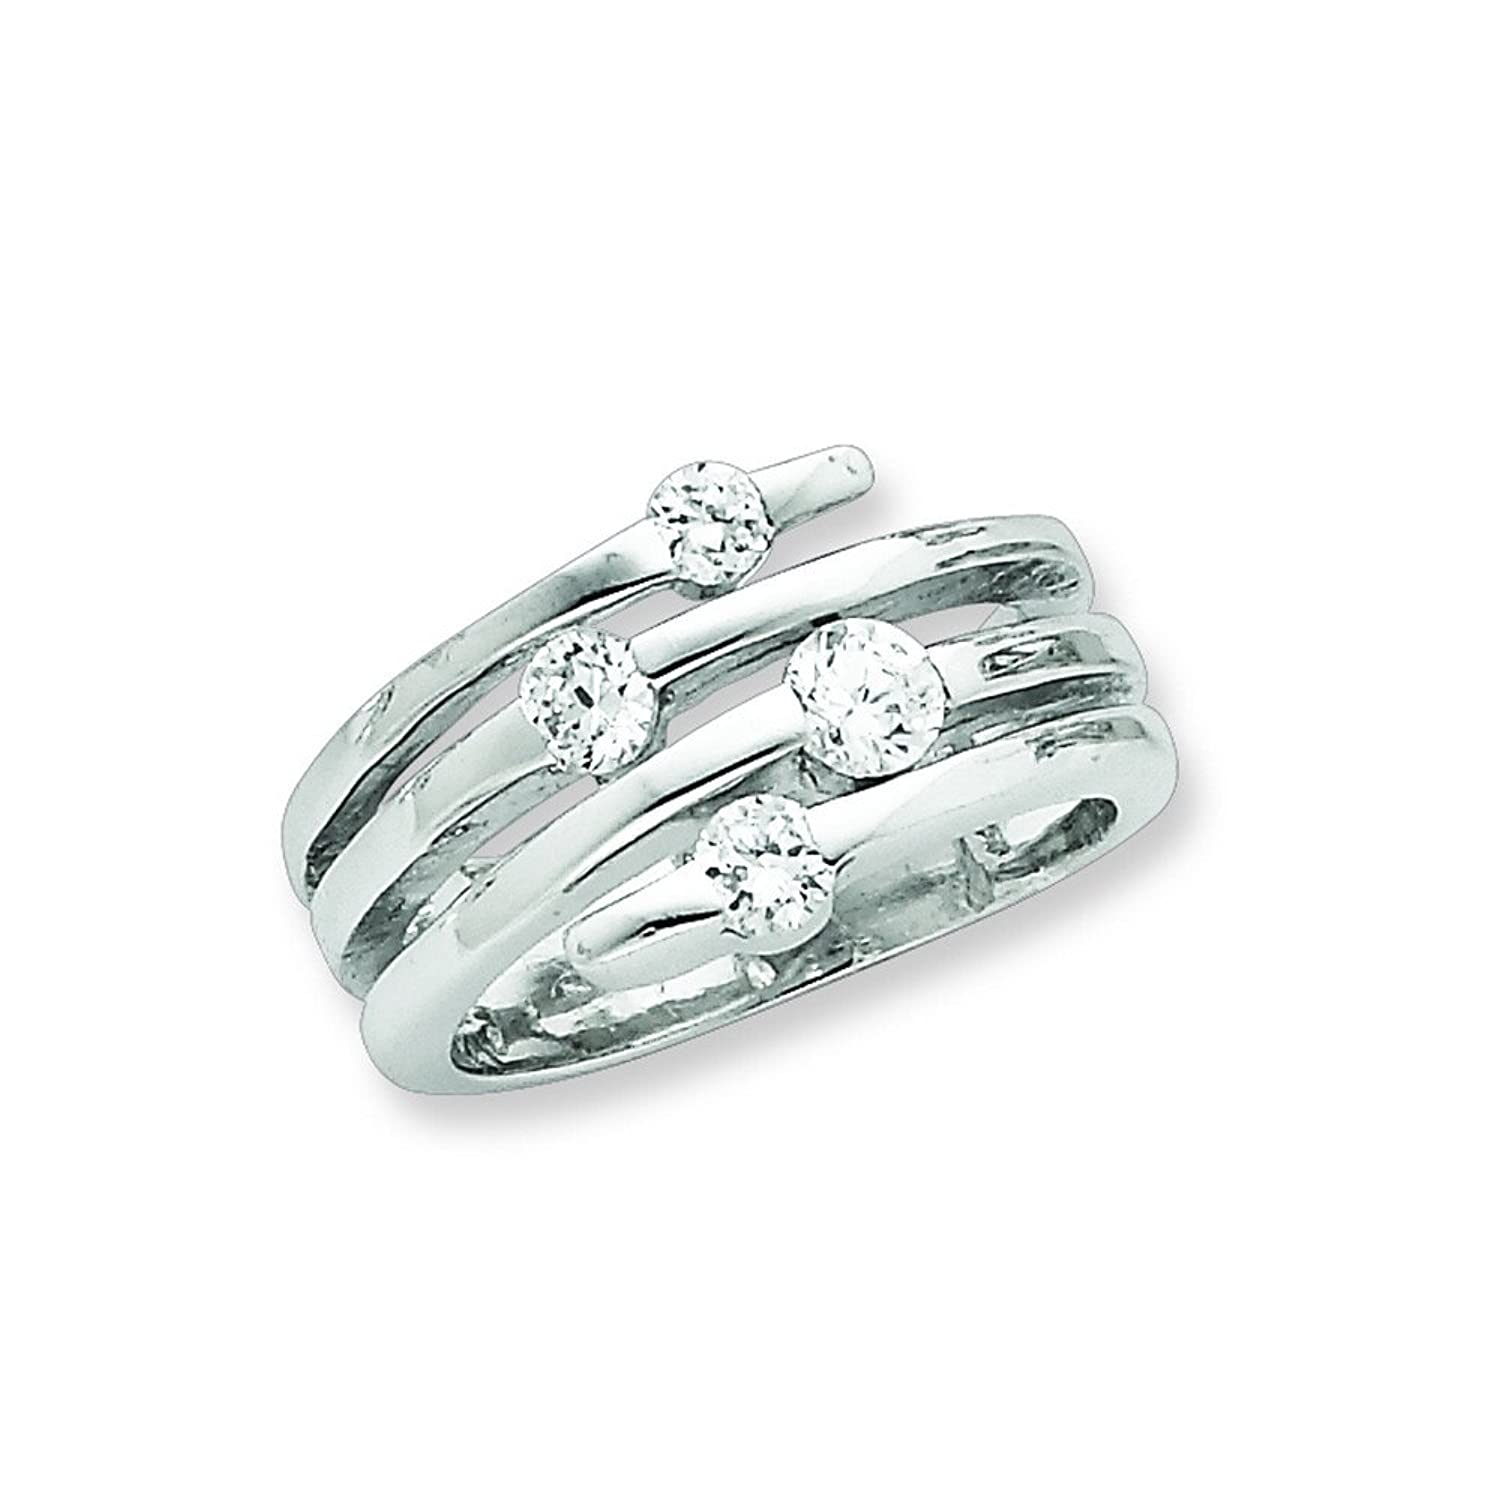 jewellery com rhodium silver amazon in intertwined cz ring dp design stackable the right rings hand plated sterling